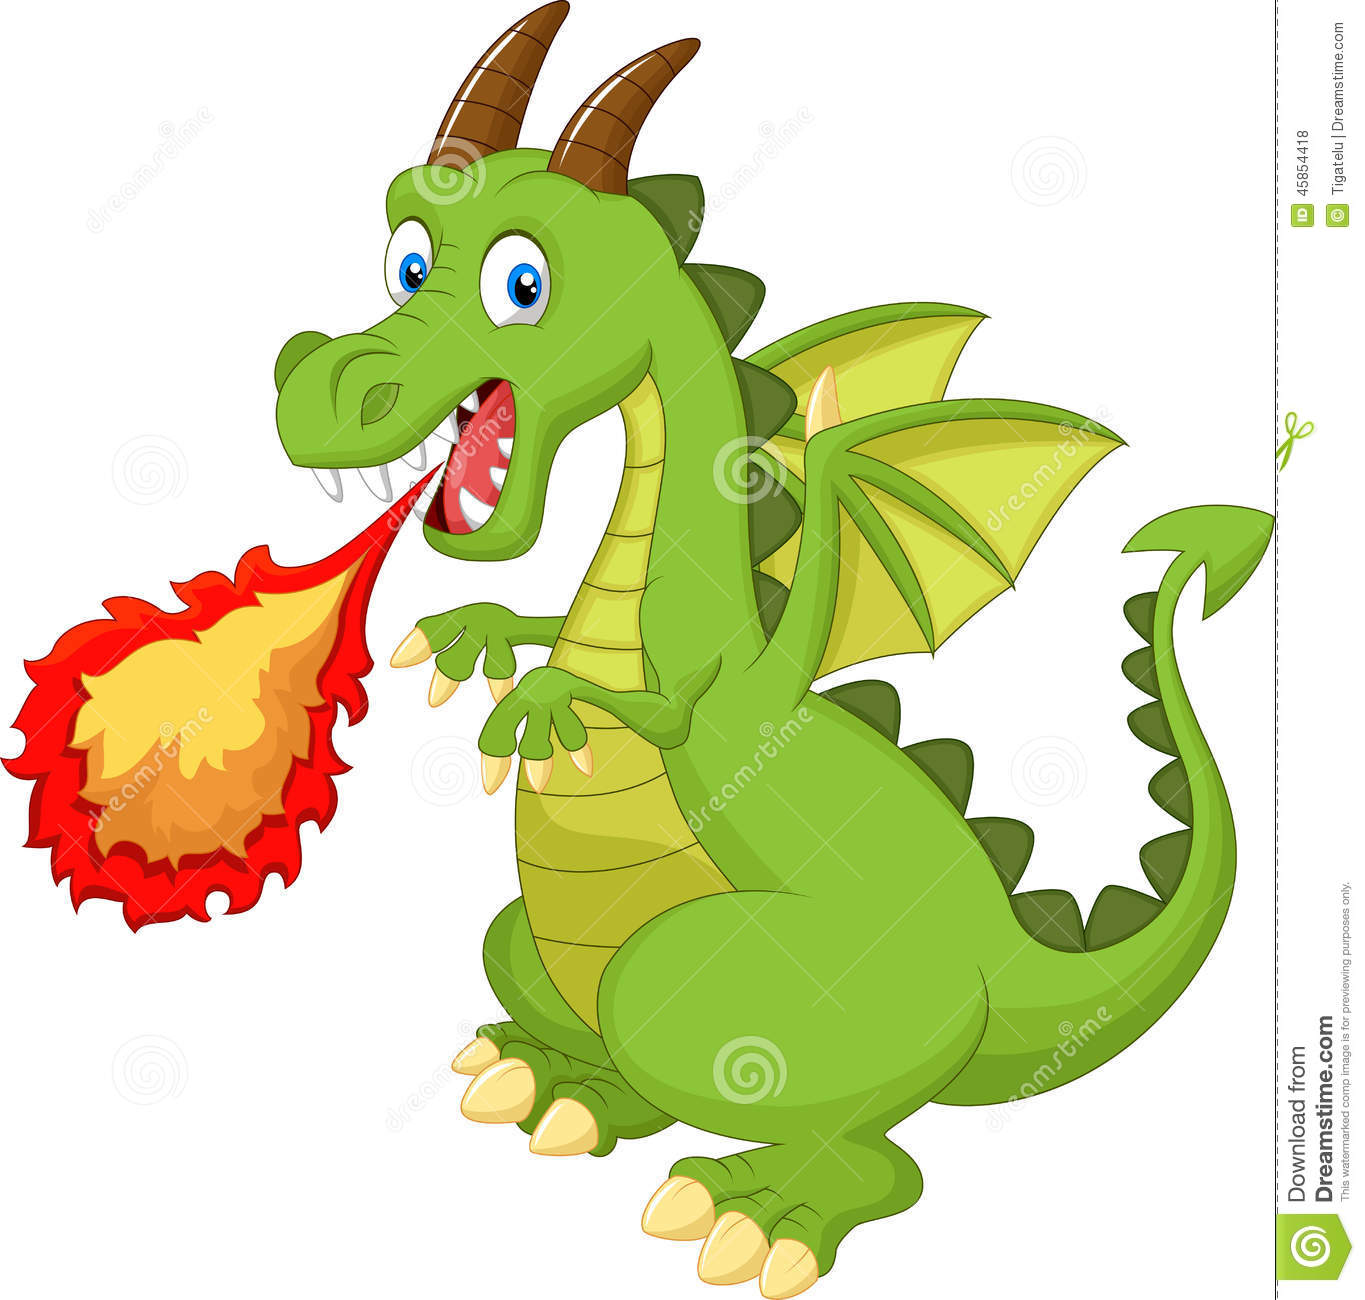 6472c21267e4 Cartoon dragon with fire stock vector. Illustration of medieval ...